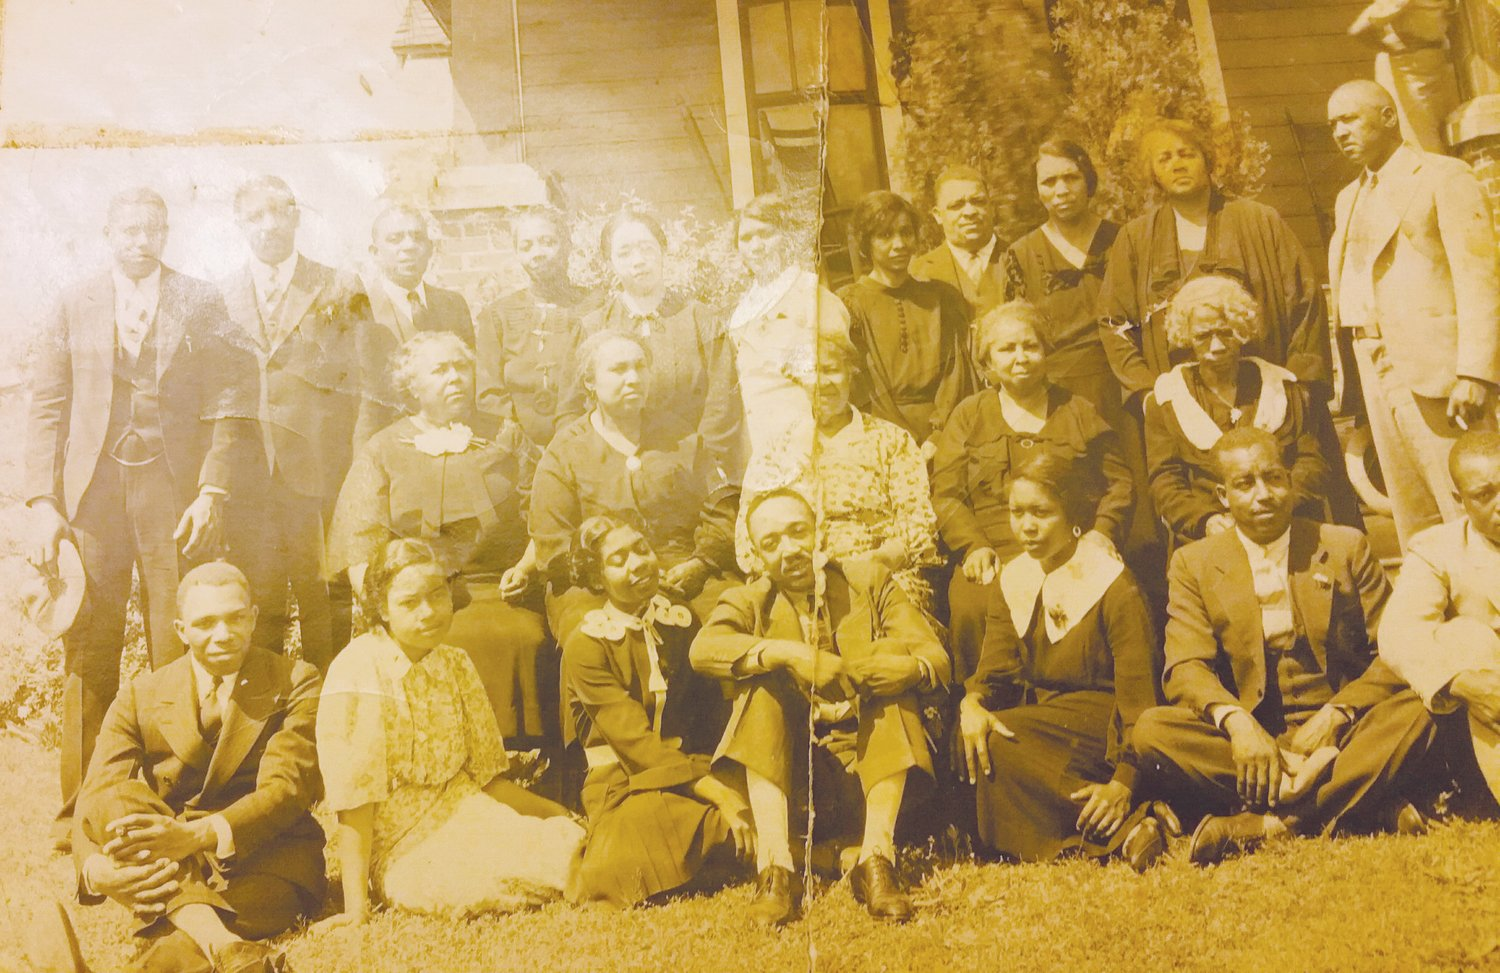 A Taylor family photo discovered by Antonio Austin as a part of his genealogical research.